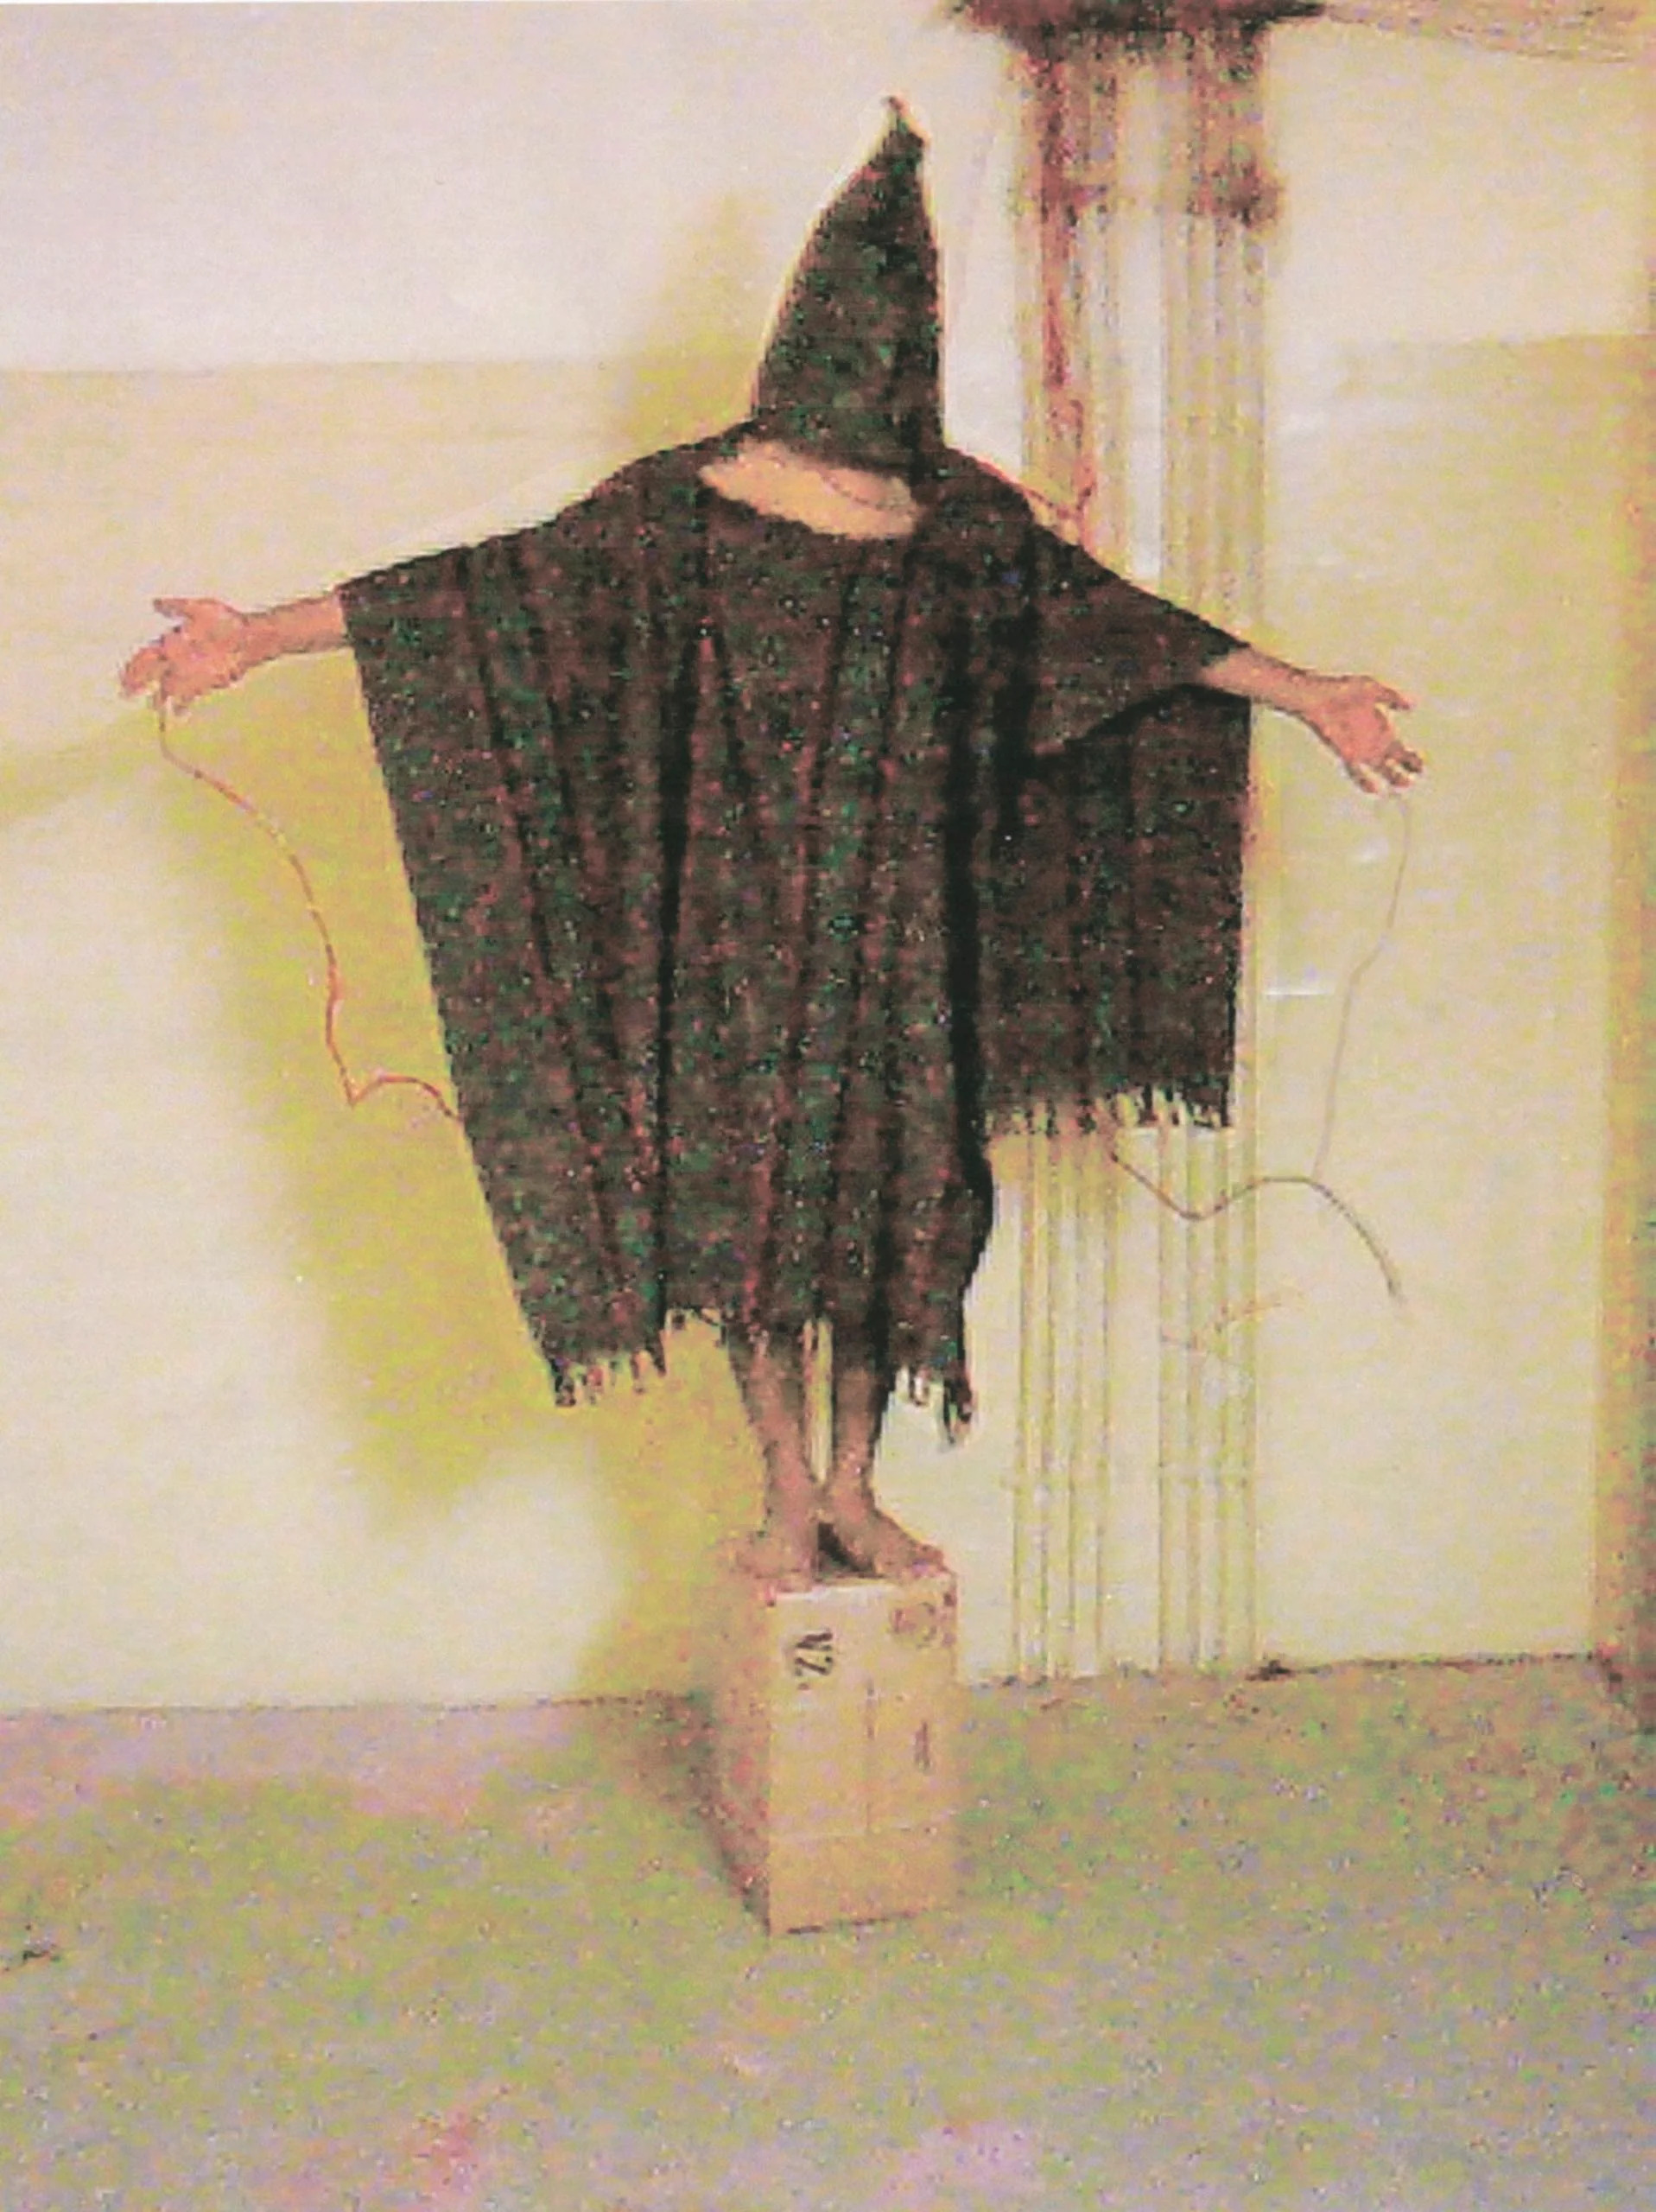 A hooded and wired Iraqi prisoner, believed to be Satar Jabar, who reportedly was told that he would be electrocuted if he fell off the box.